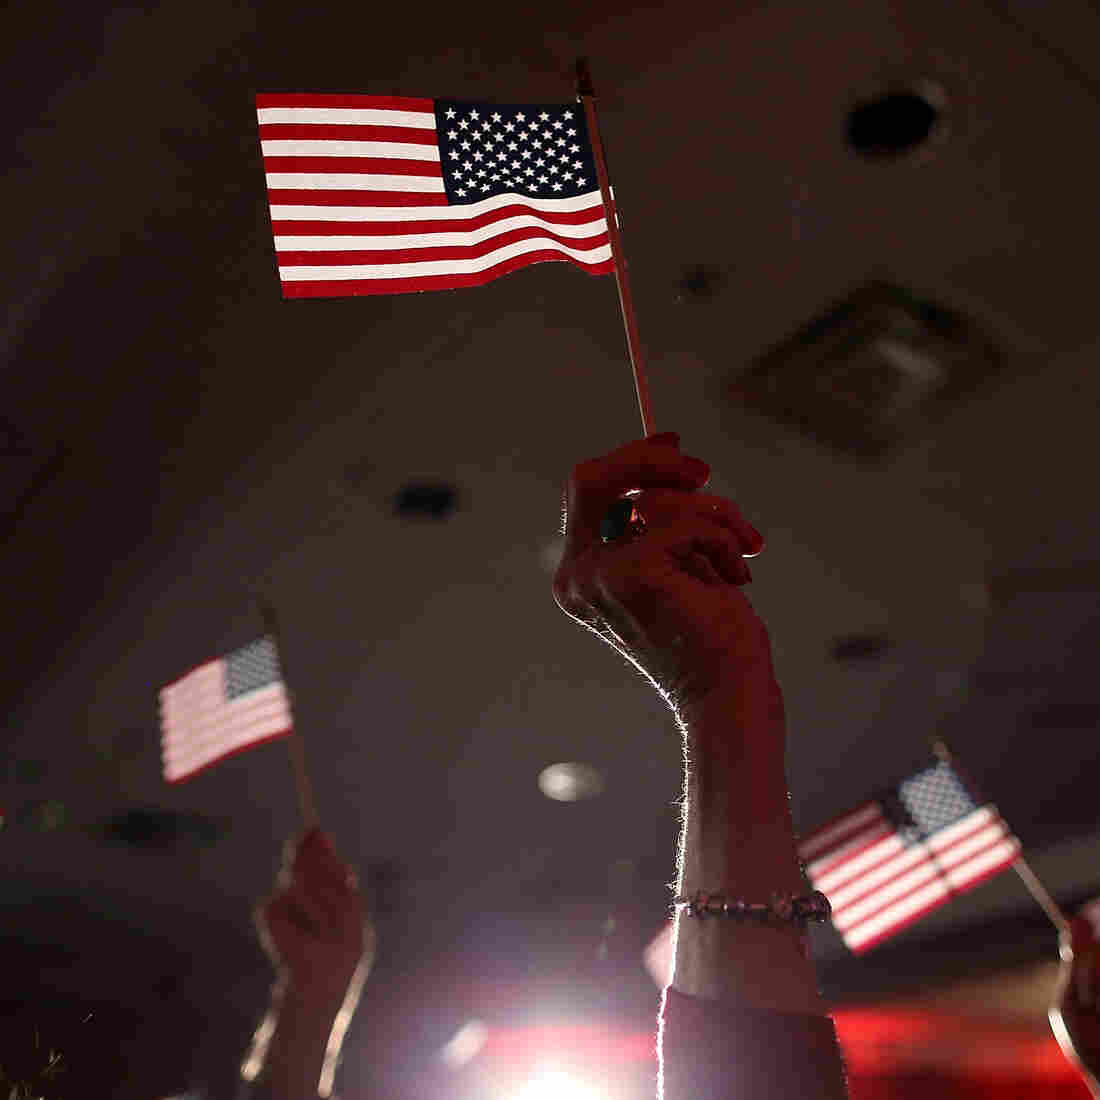 GOP Takes Control Of Senate With Wins in N.C., Iowa, Ark., Colo.